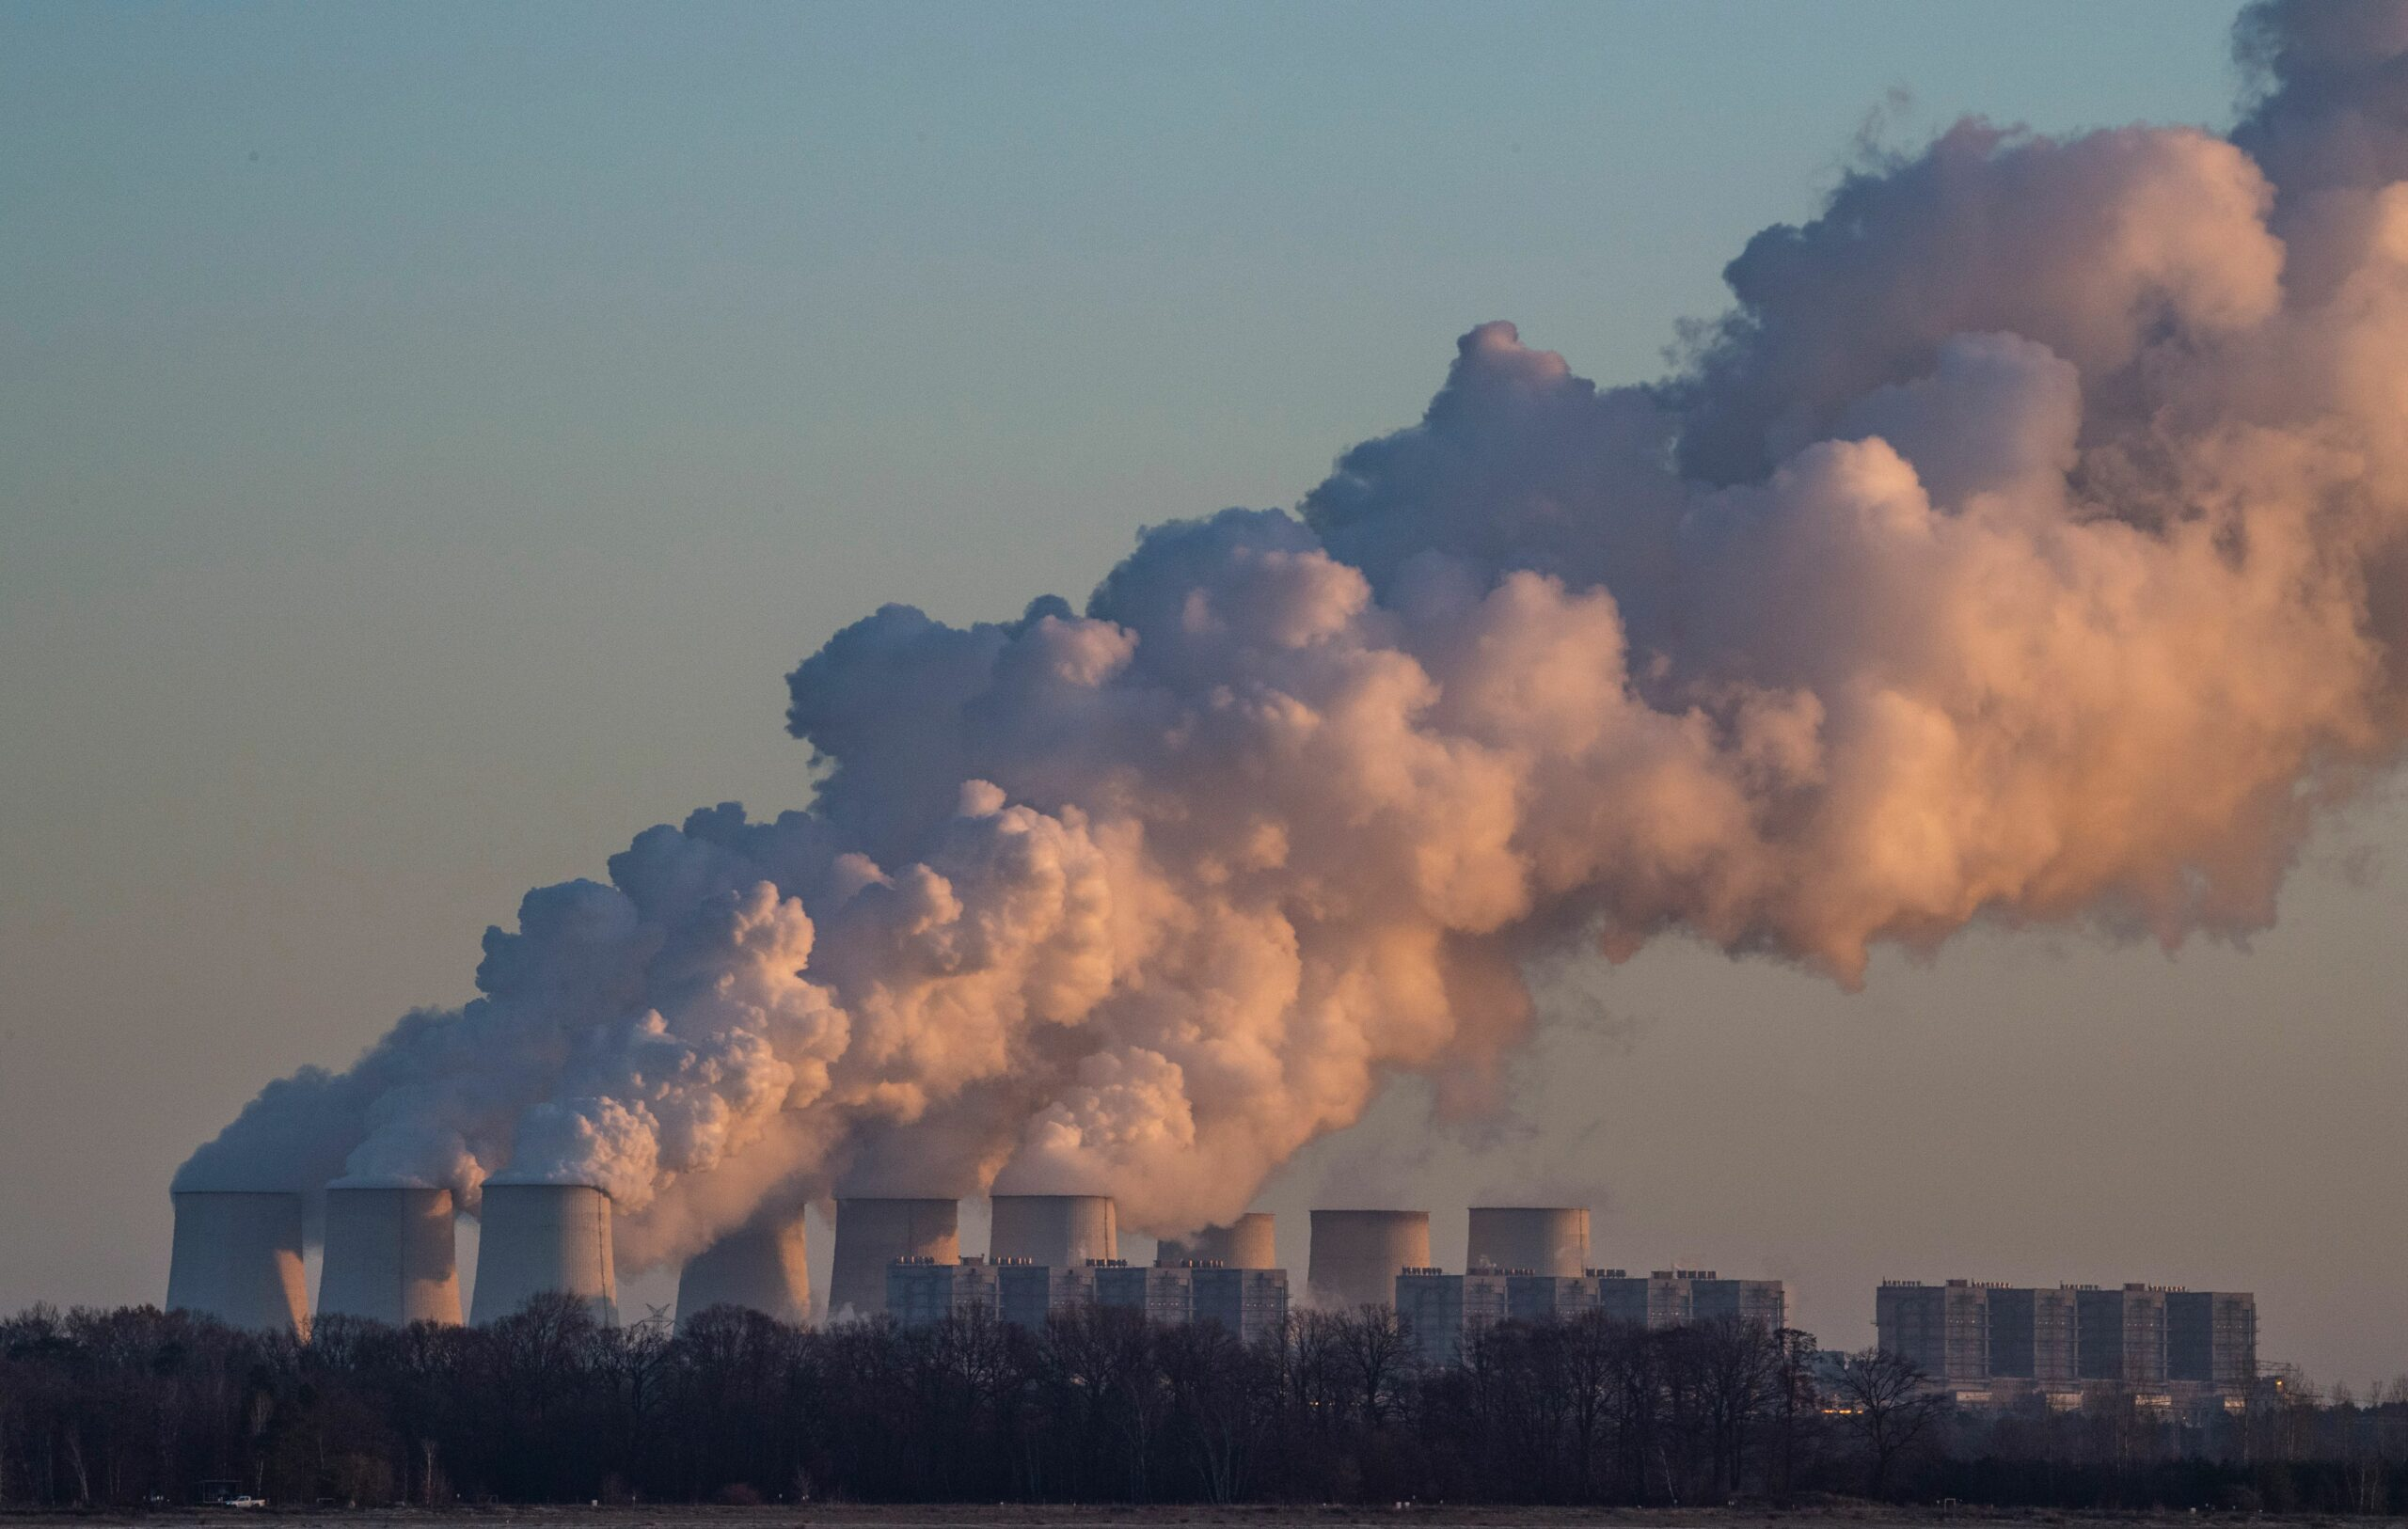 A picture taken on Nov. 30, 2019 shows a view of the Jaenschwalde Power Station near Peitz, eastern Germany. Credit: John MacDougall/AFP via Getty Images